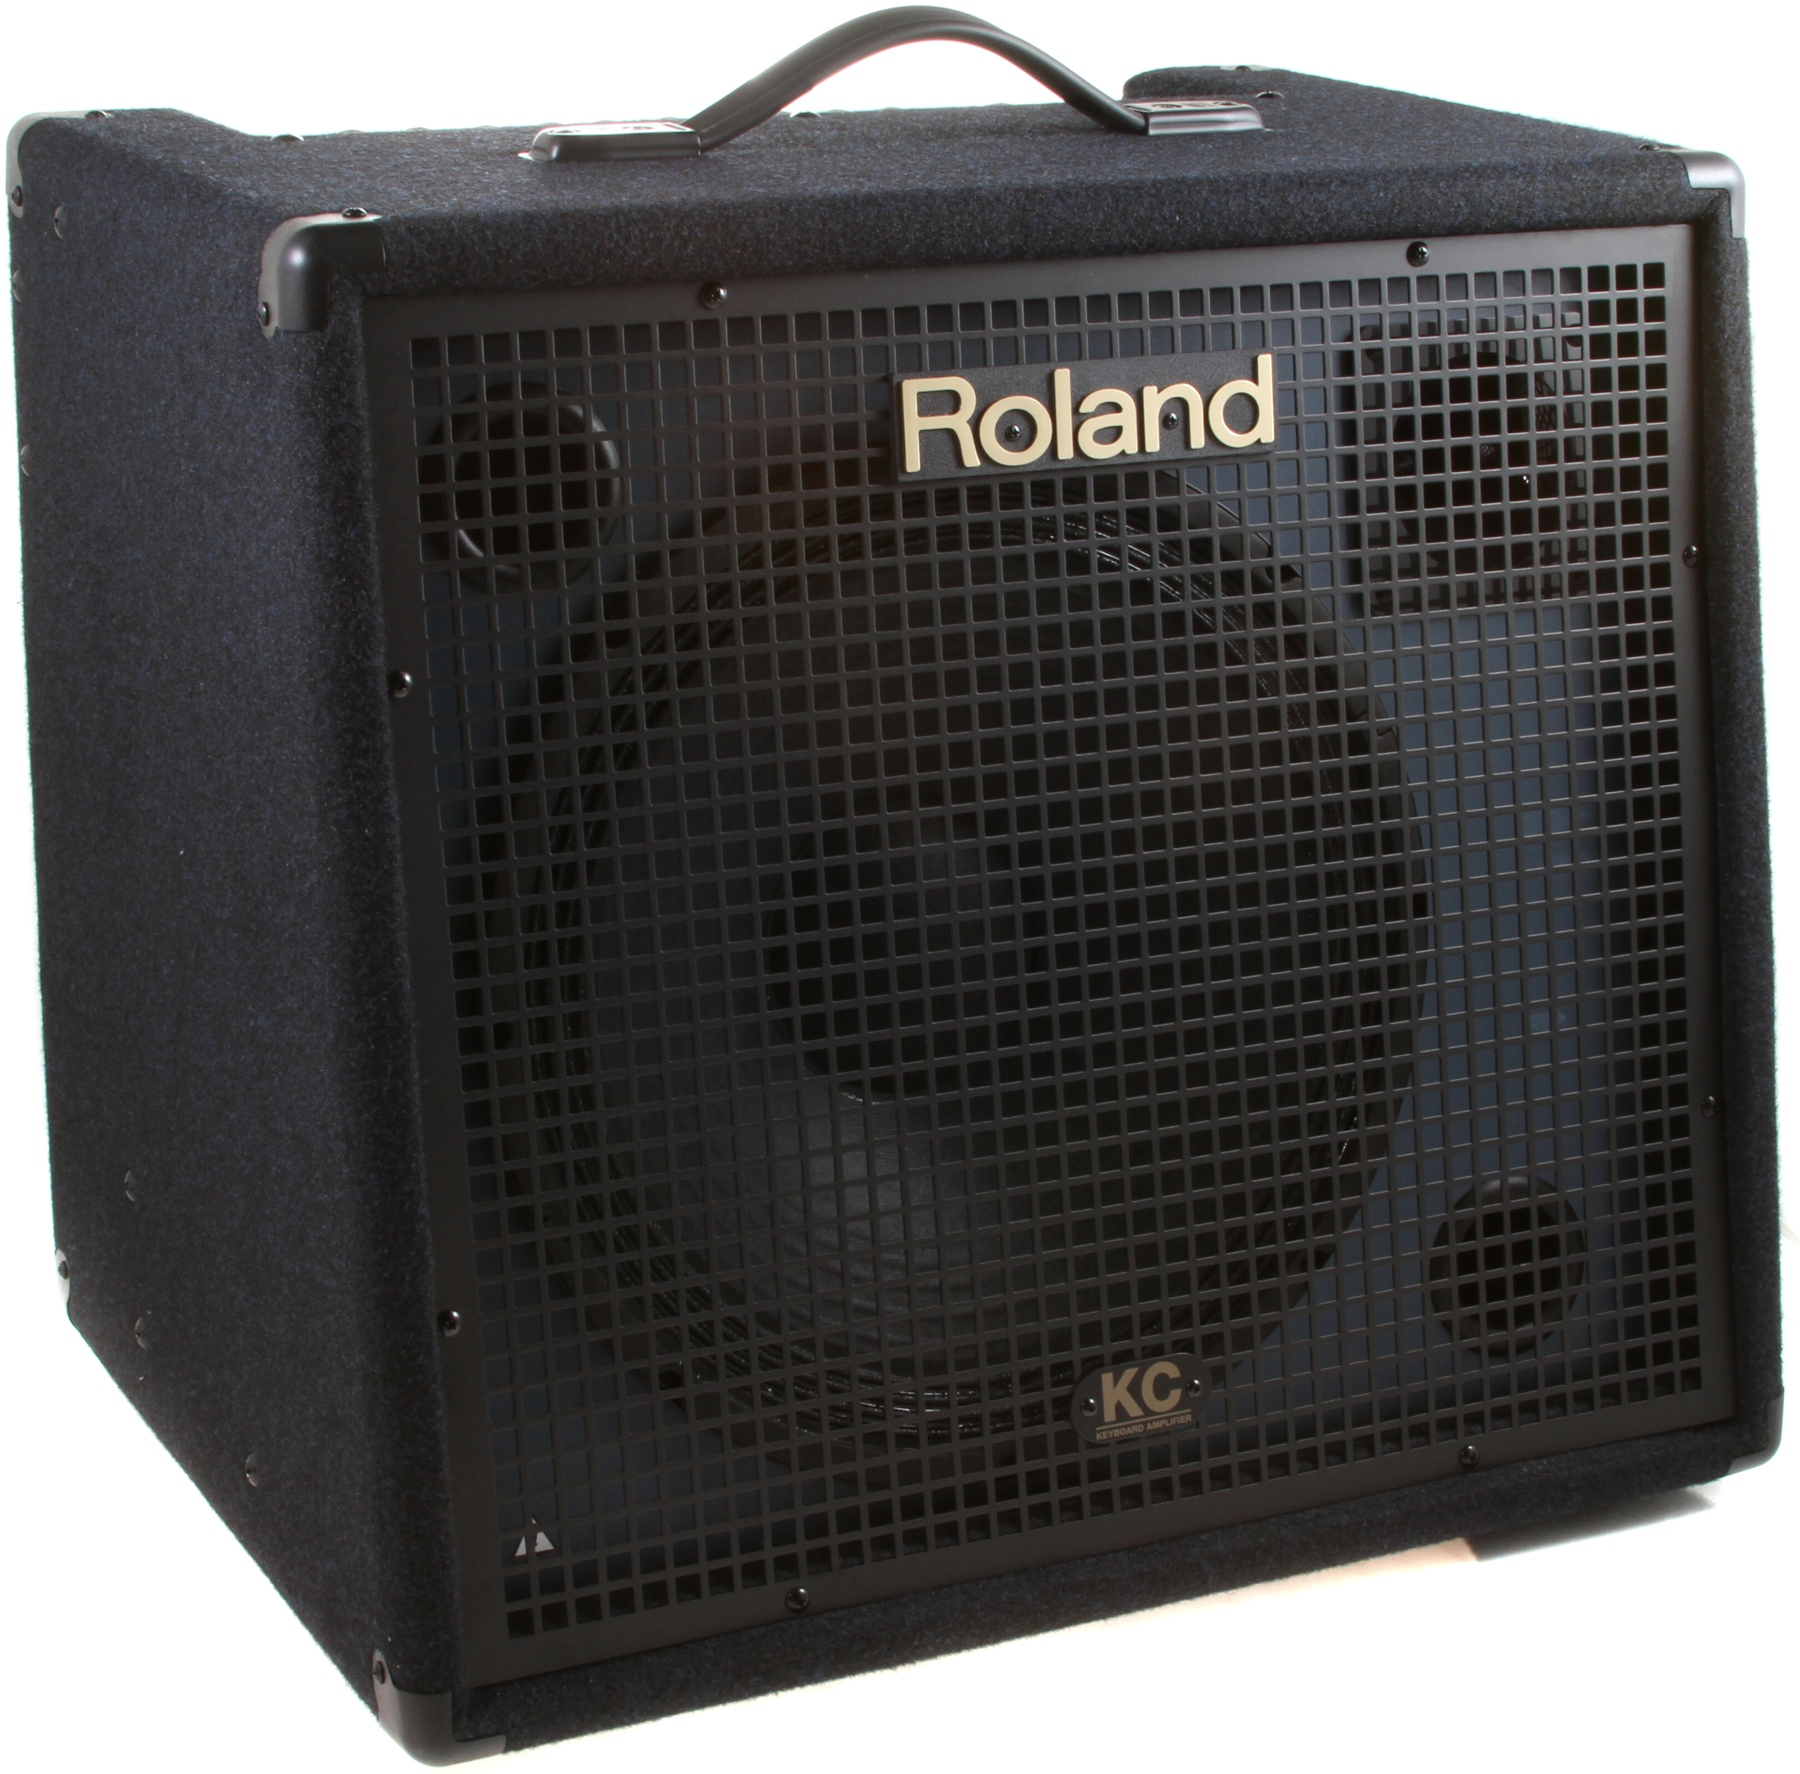 roland kc 550 keyboard amplifier elevated audio. Black Bedroom Furniture Sets. Home Design Ideas